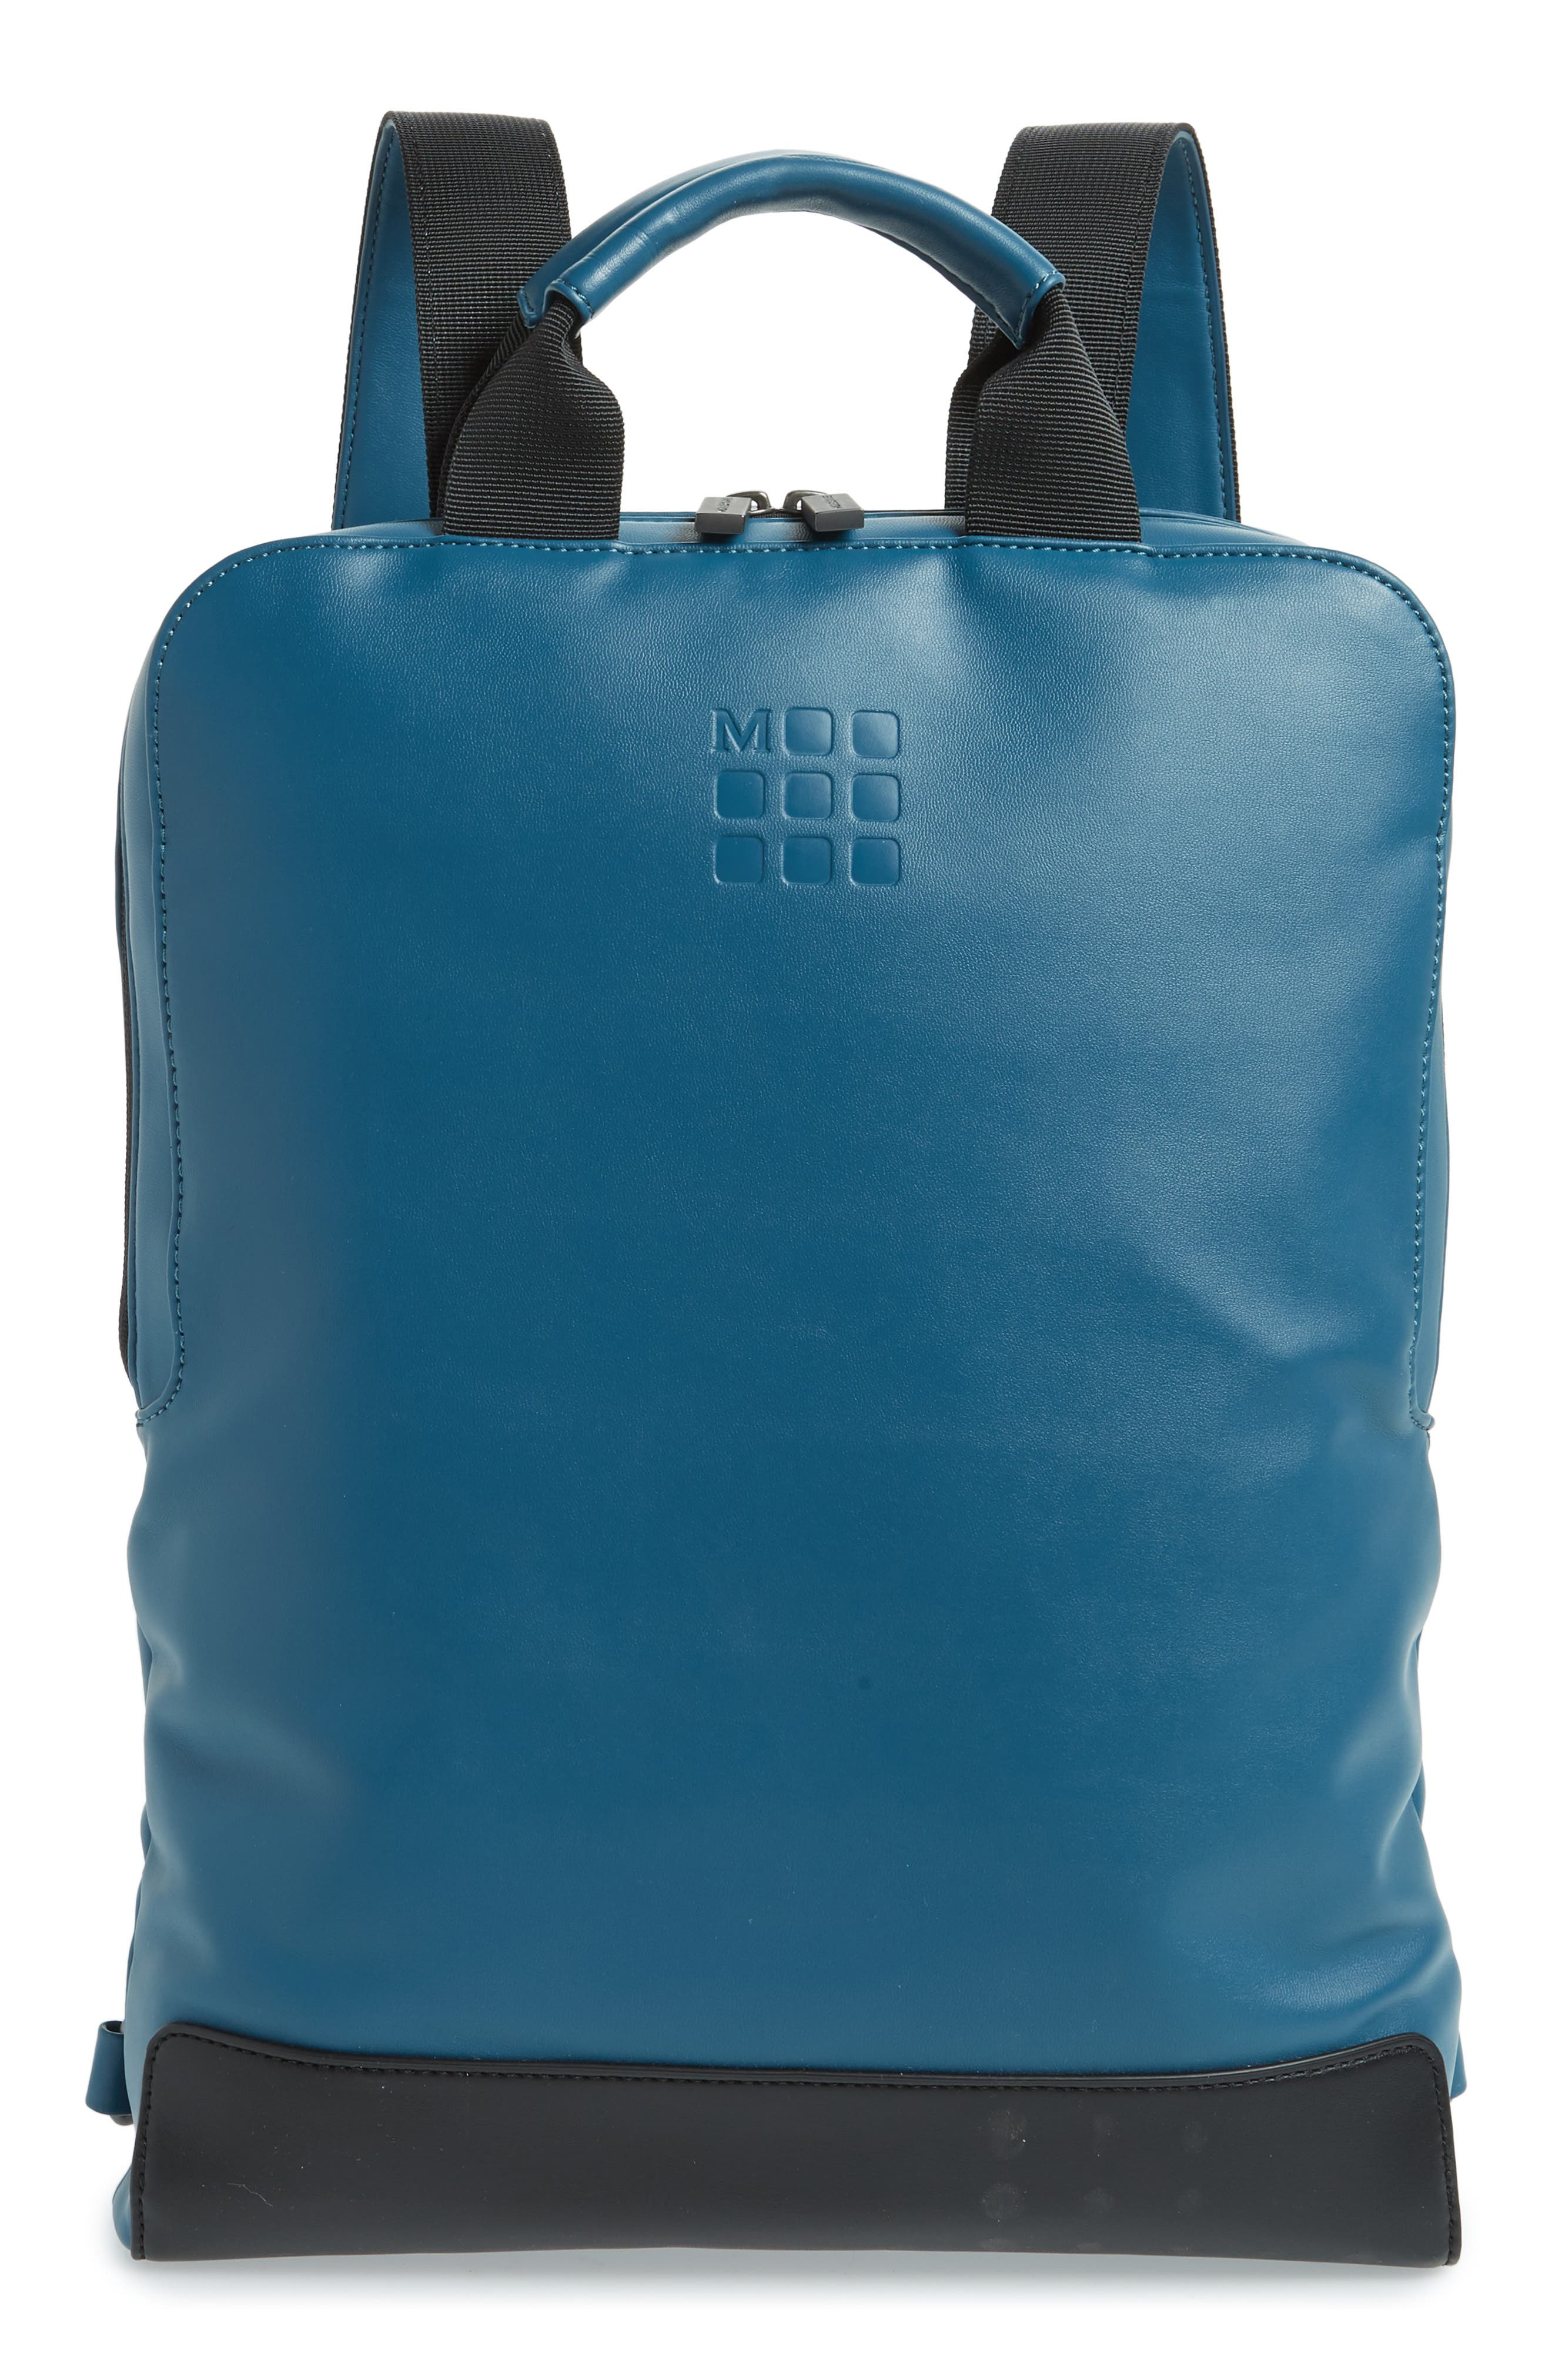 ID Vertical Device Bag,                         Main,                         color, Steel Blue